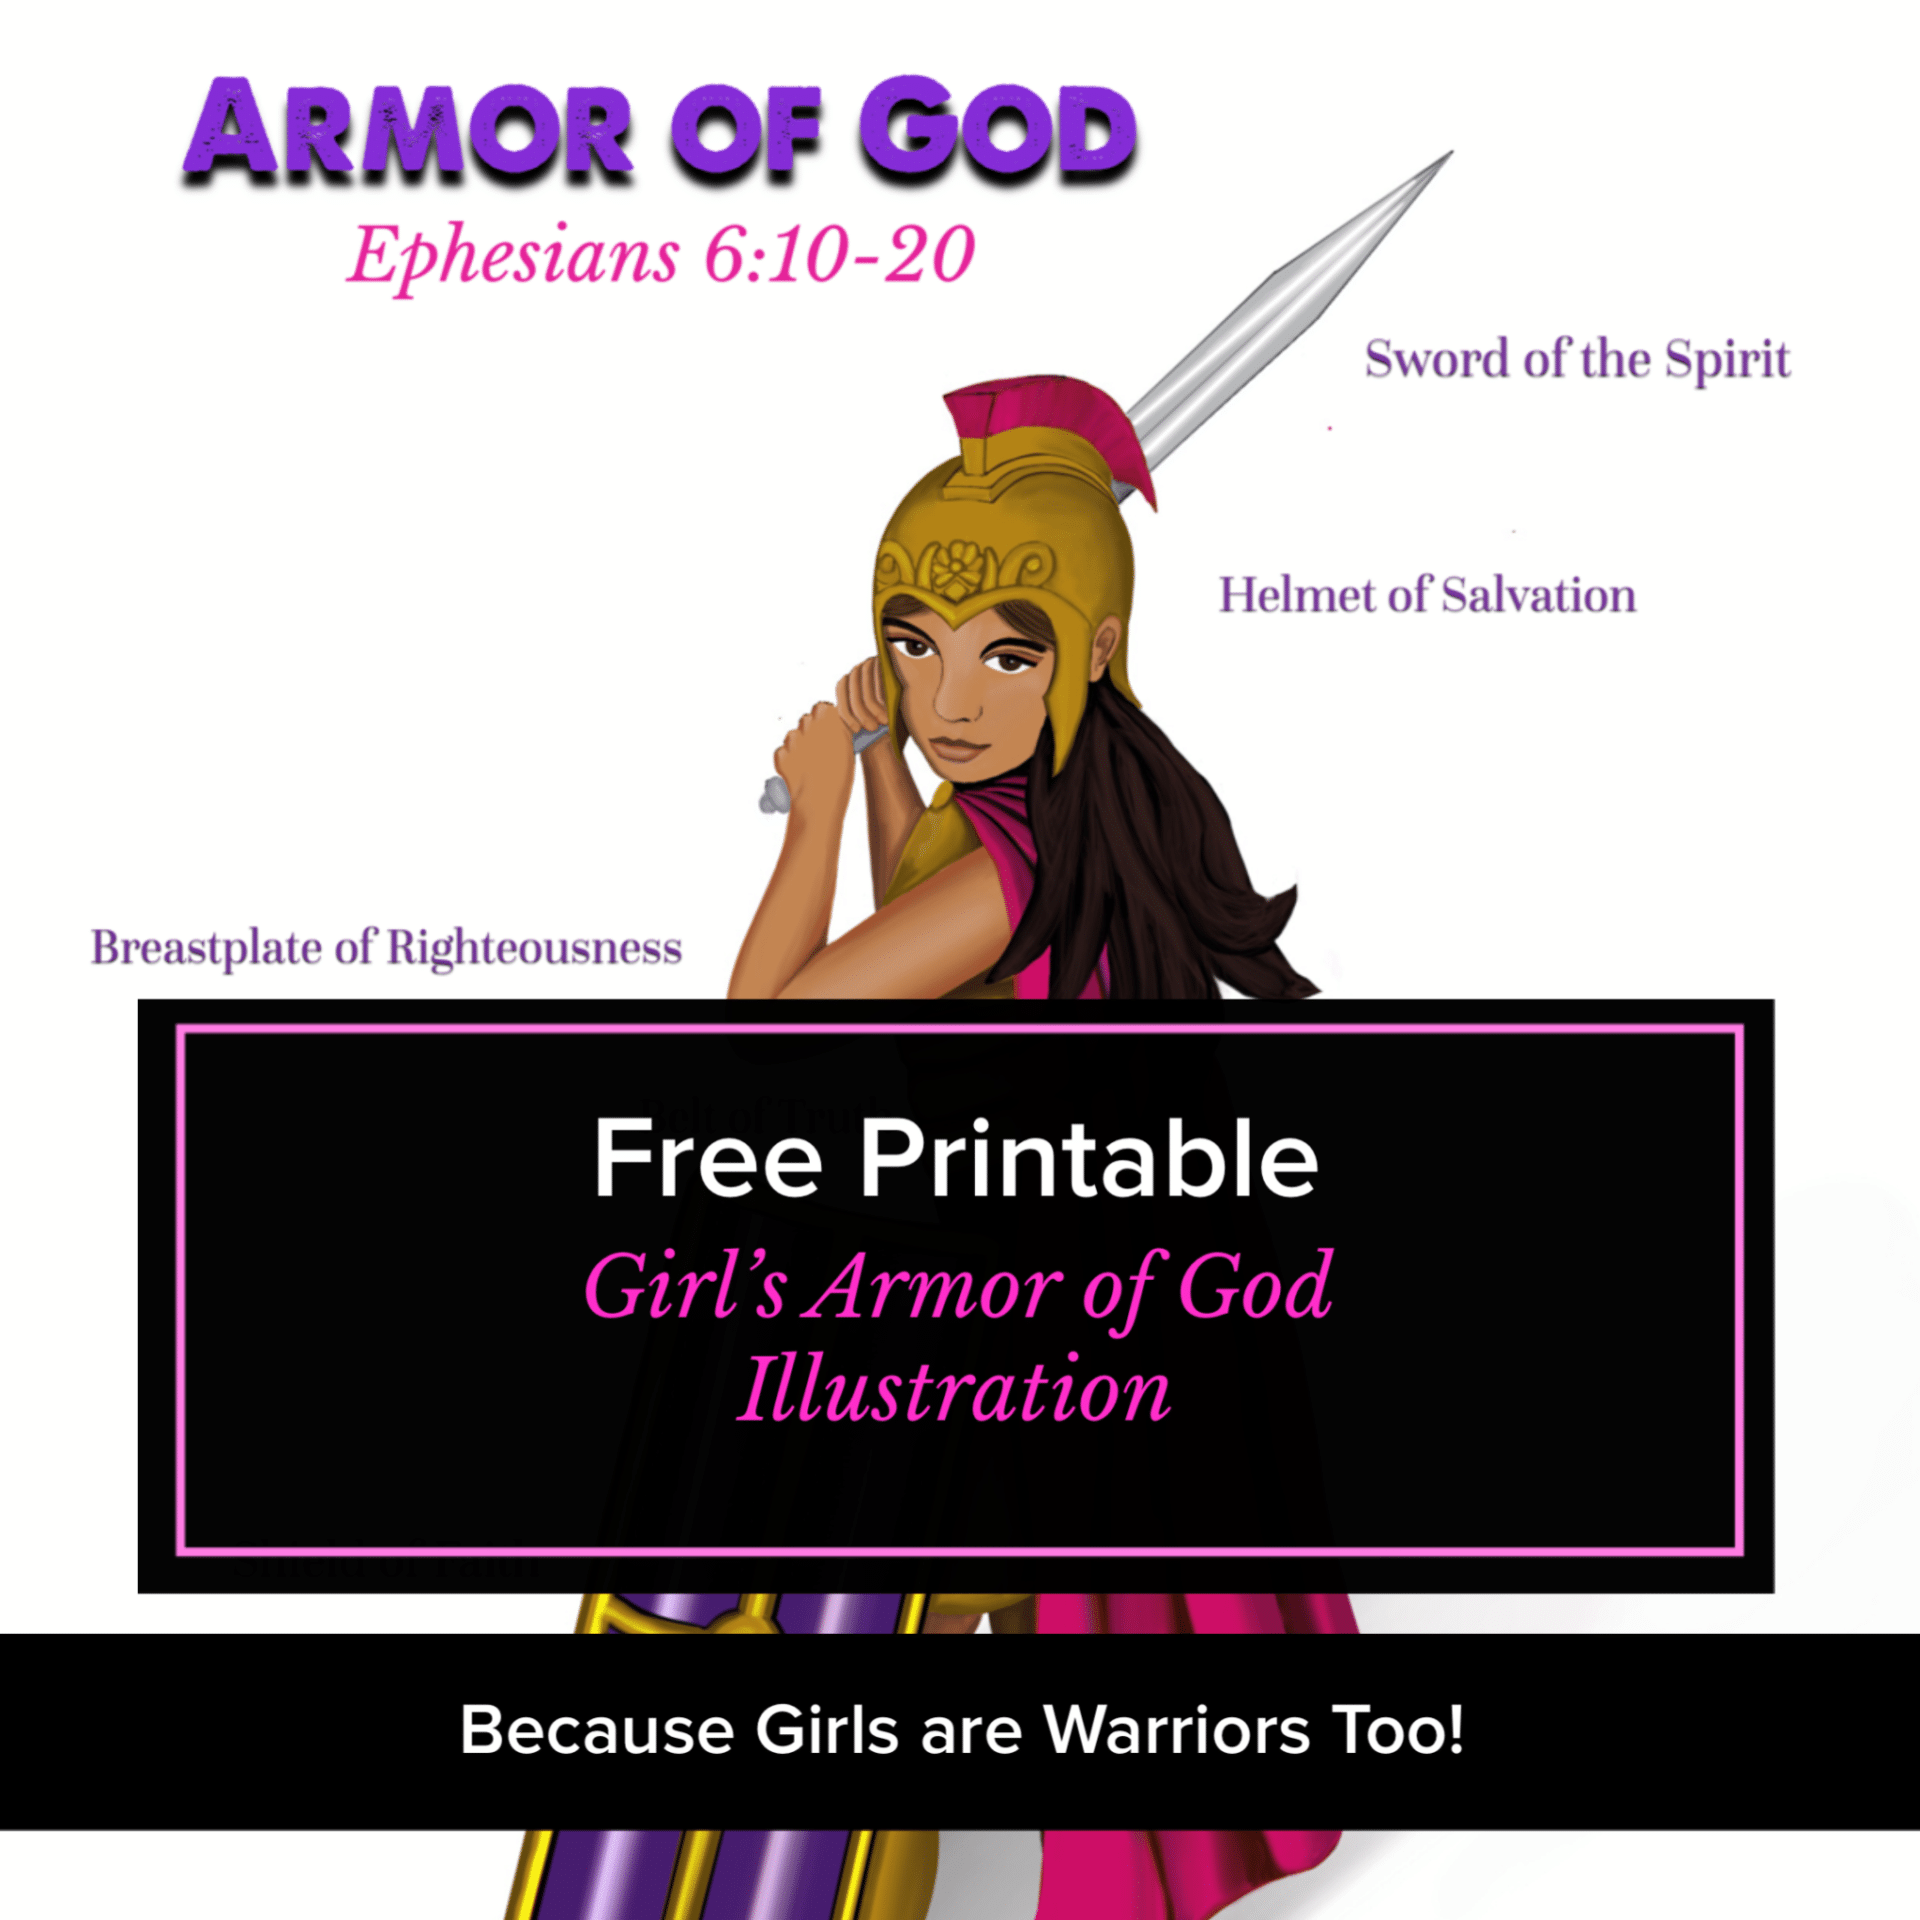 Because Girls are Warriors Too!